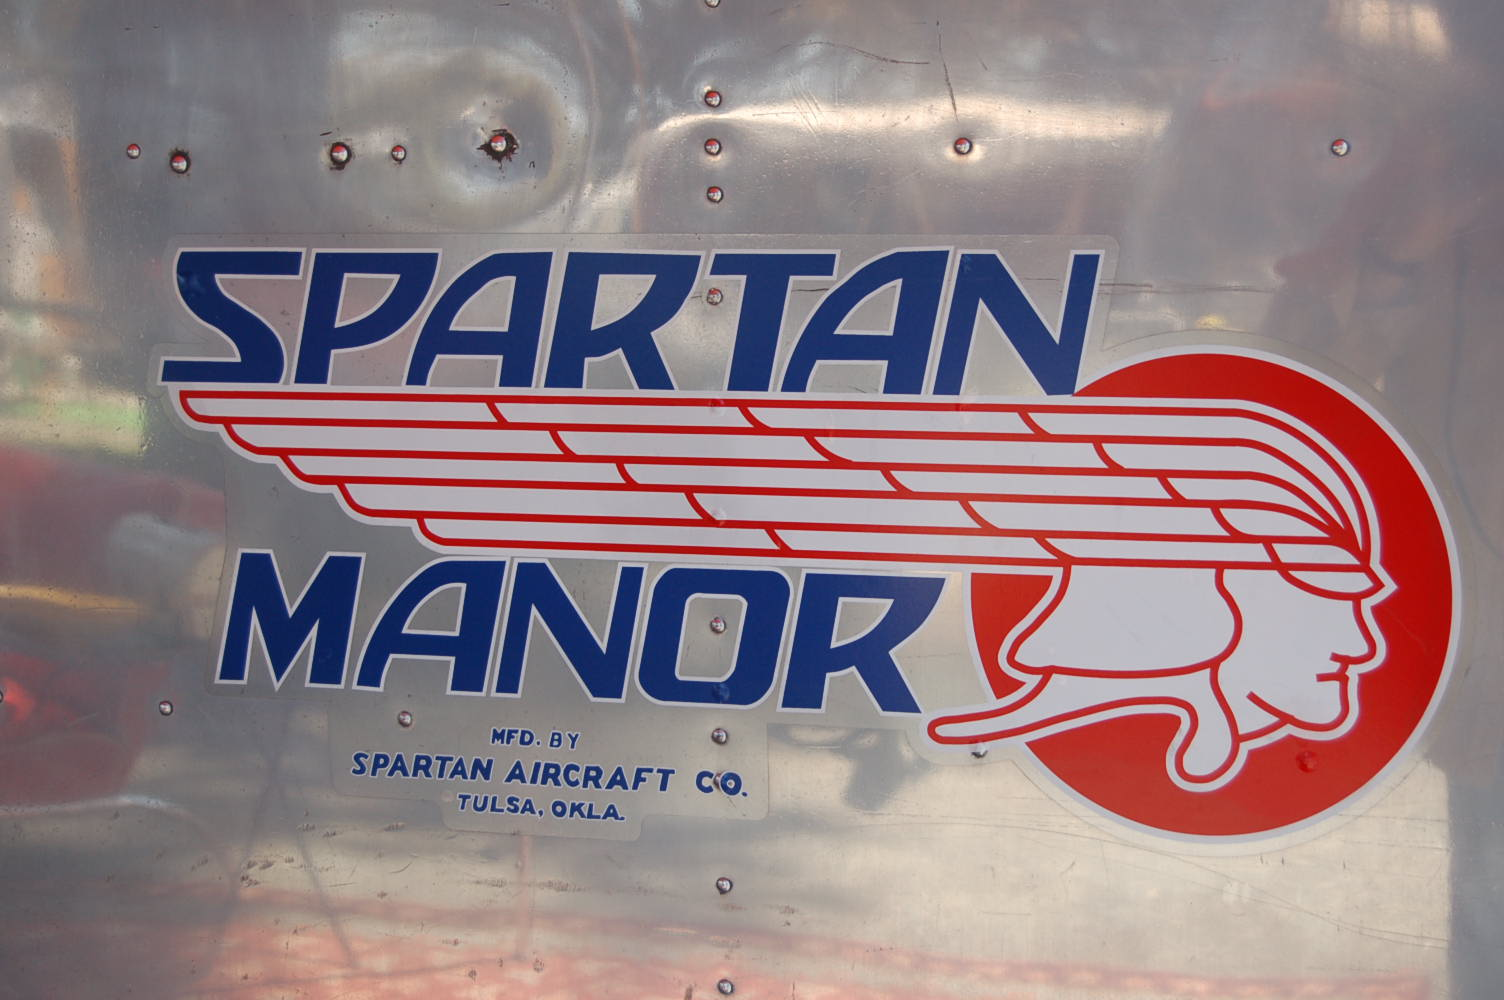 Shot Of Perfect Spartan Factory Logo On Side 1948 Manor Travel Trailer